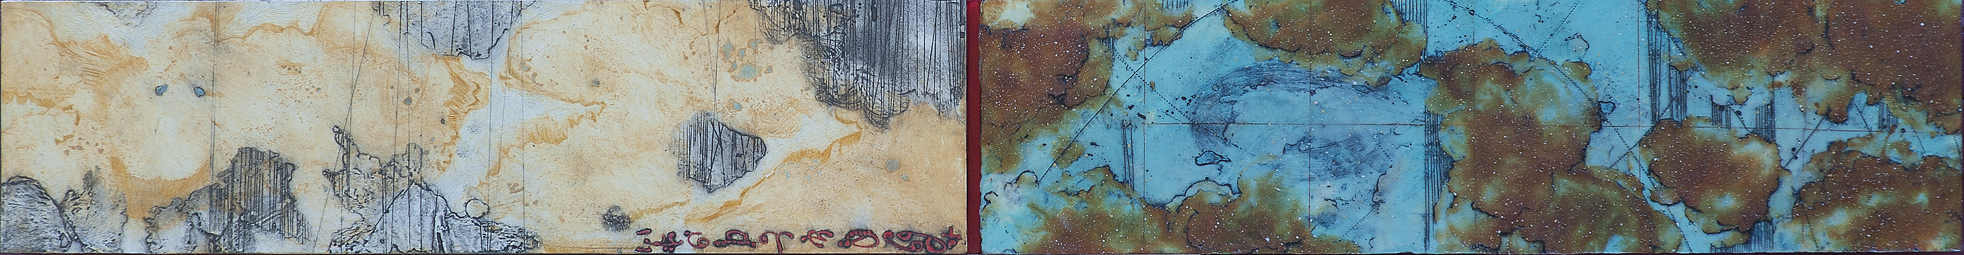 Opposing Cartography 10 , monoprint, encaustic and oil on panel 8 x 44.5 inches